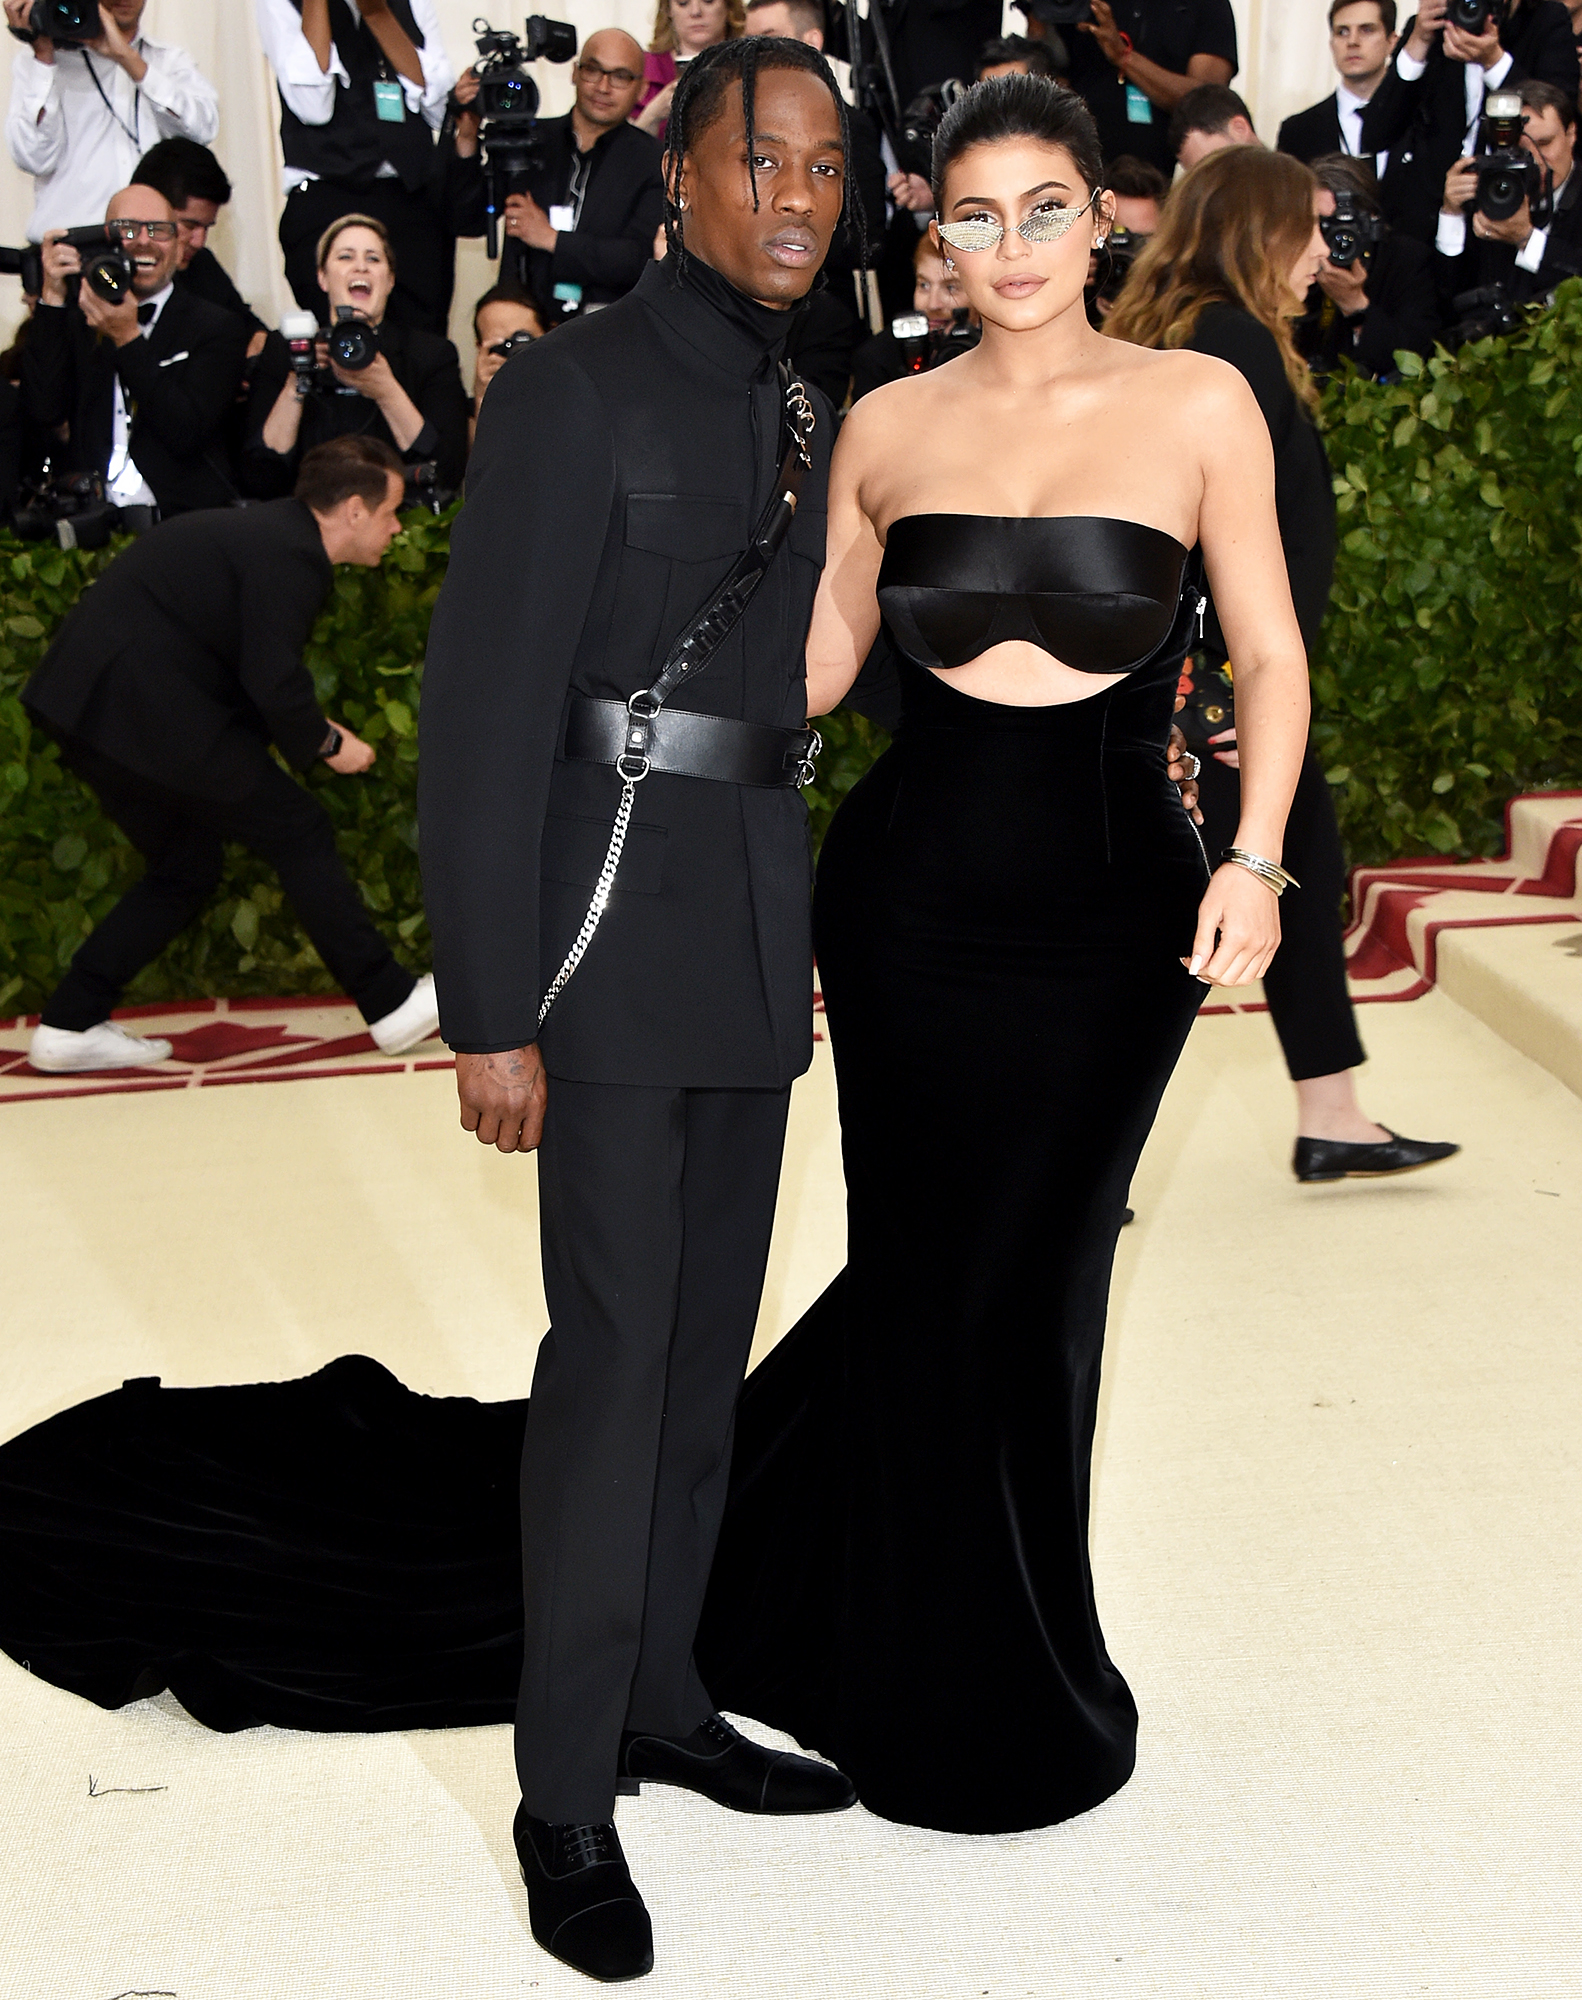 Travis Scott in Christian Louboutin shoes and Kylie Jenner in Alexander Wang and Chopard jewelry